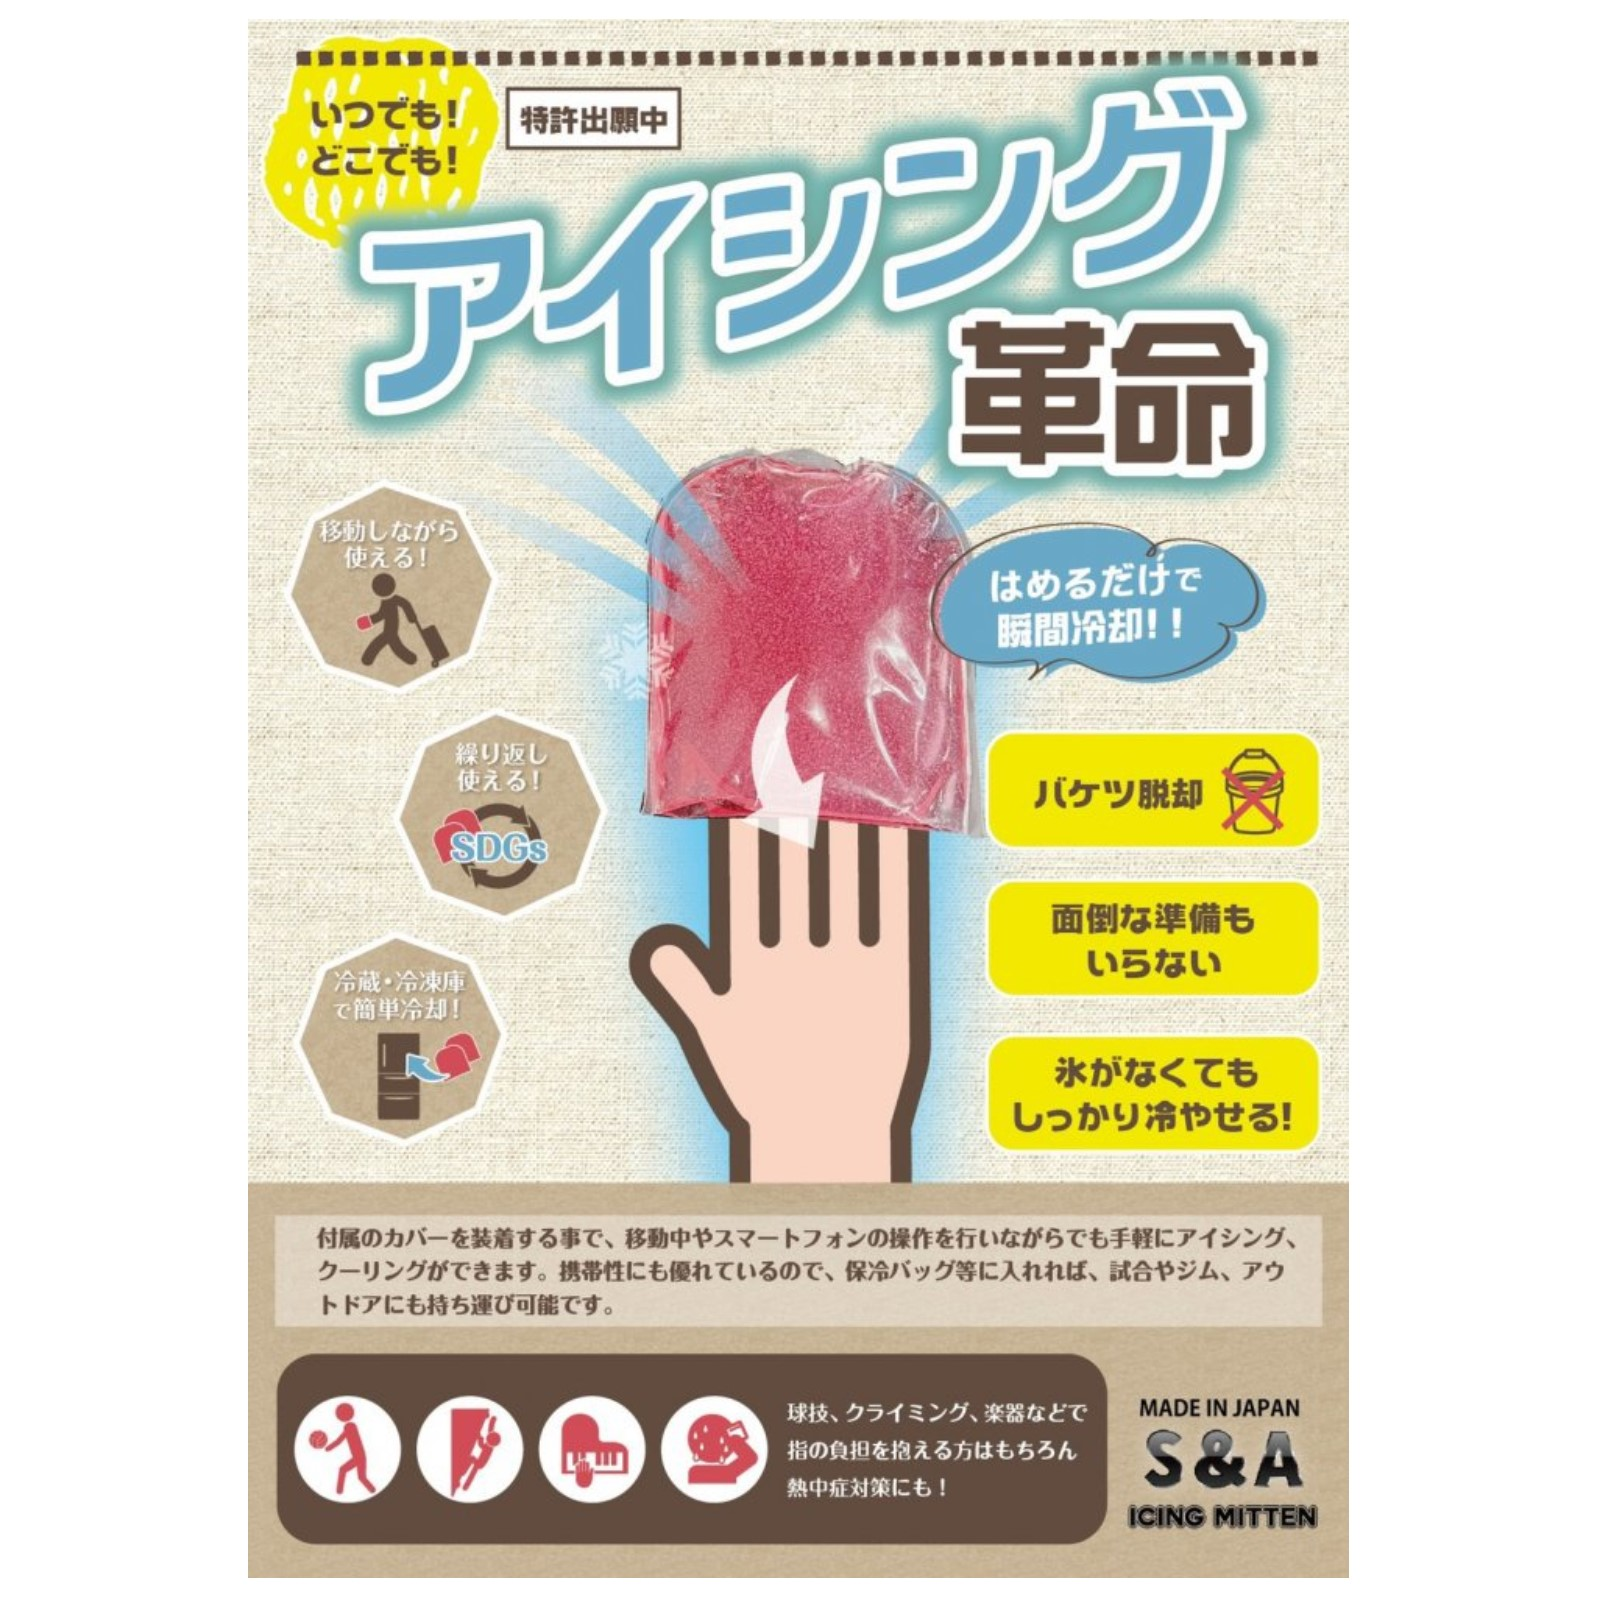 S&A ICING MITTEN アイシングミトン